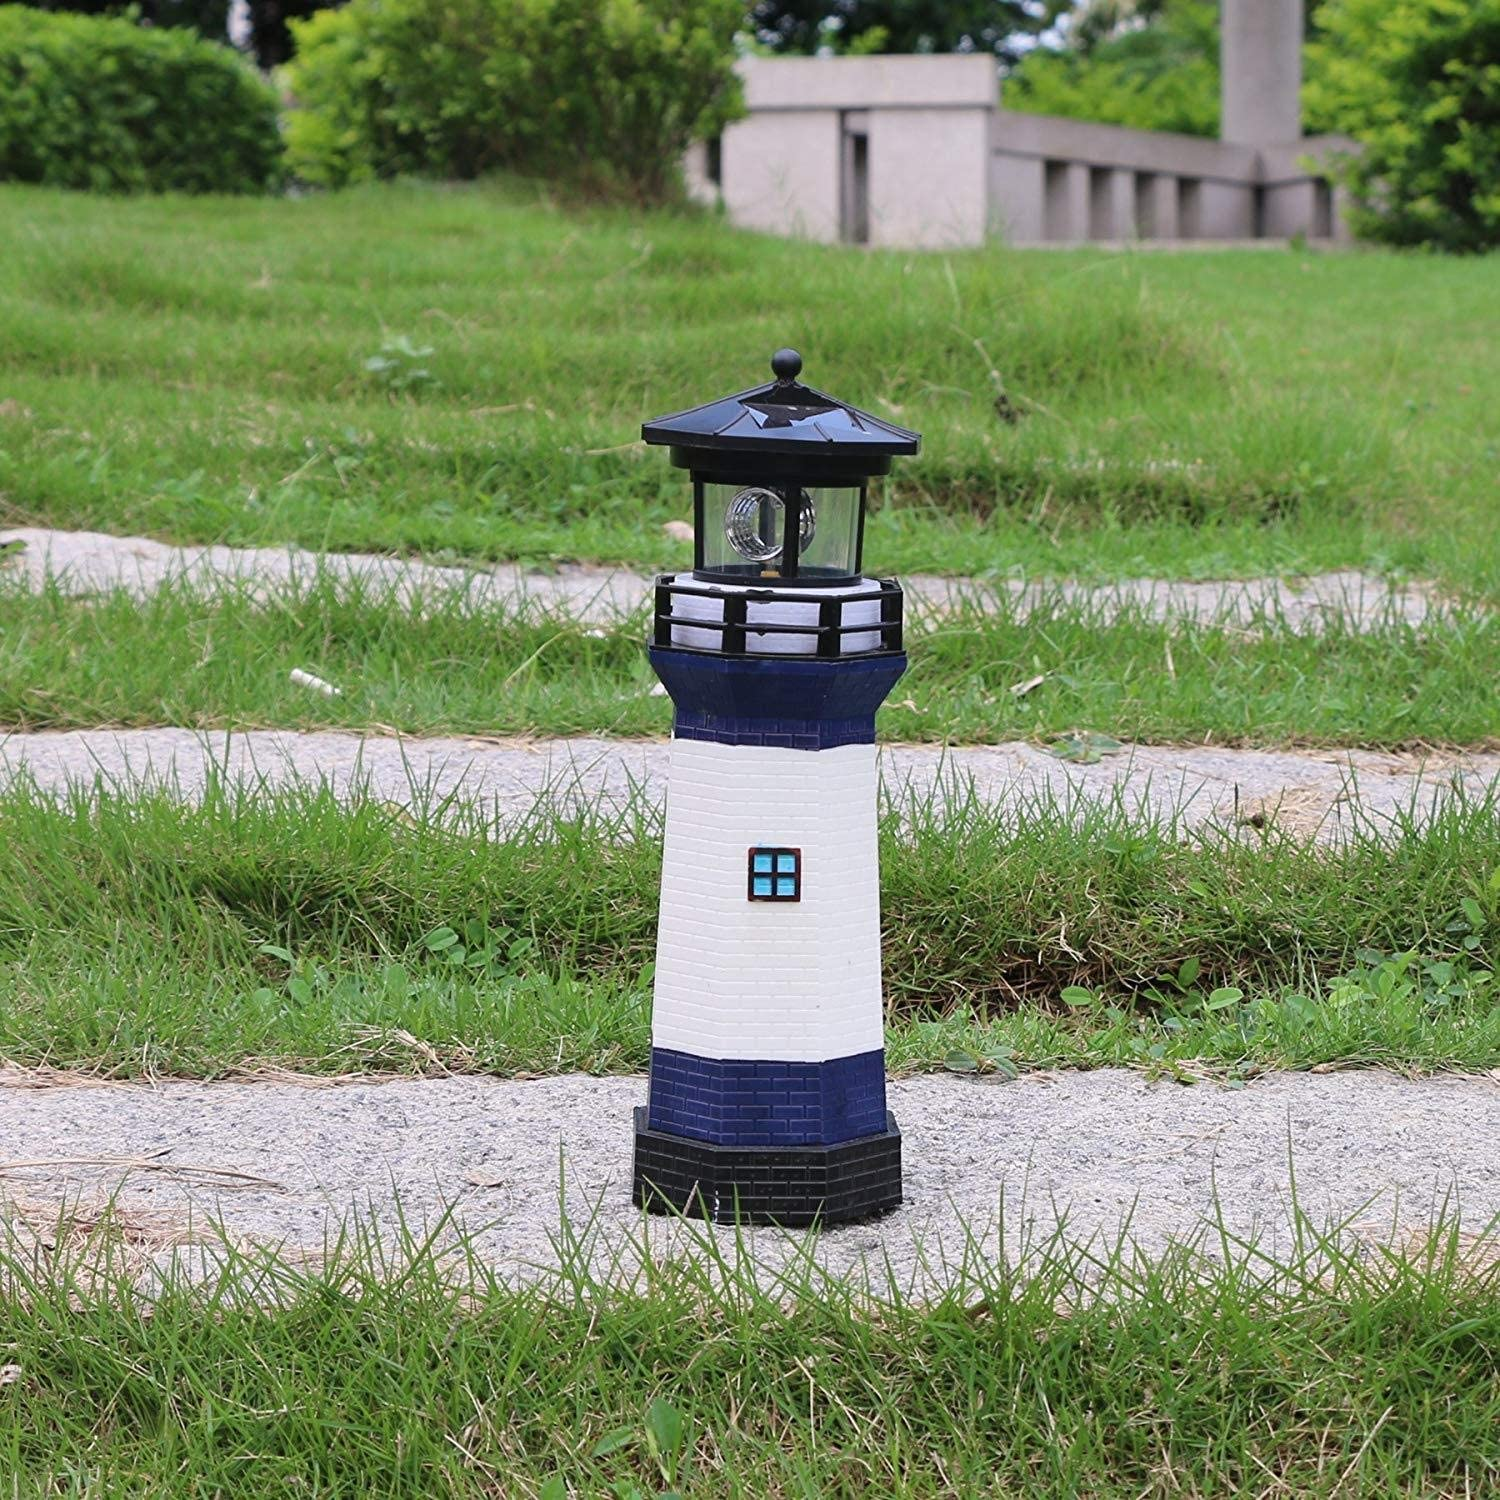 SALENEW very popular EH-GARDEN Solar Lighthouse Outdoor Decor with Lamp supreme Rotating Lawn